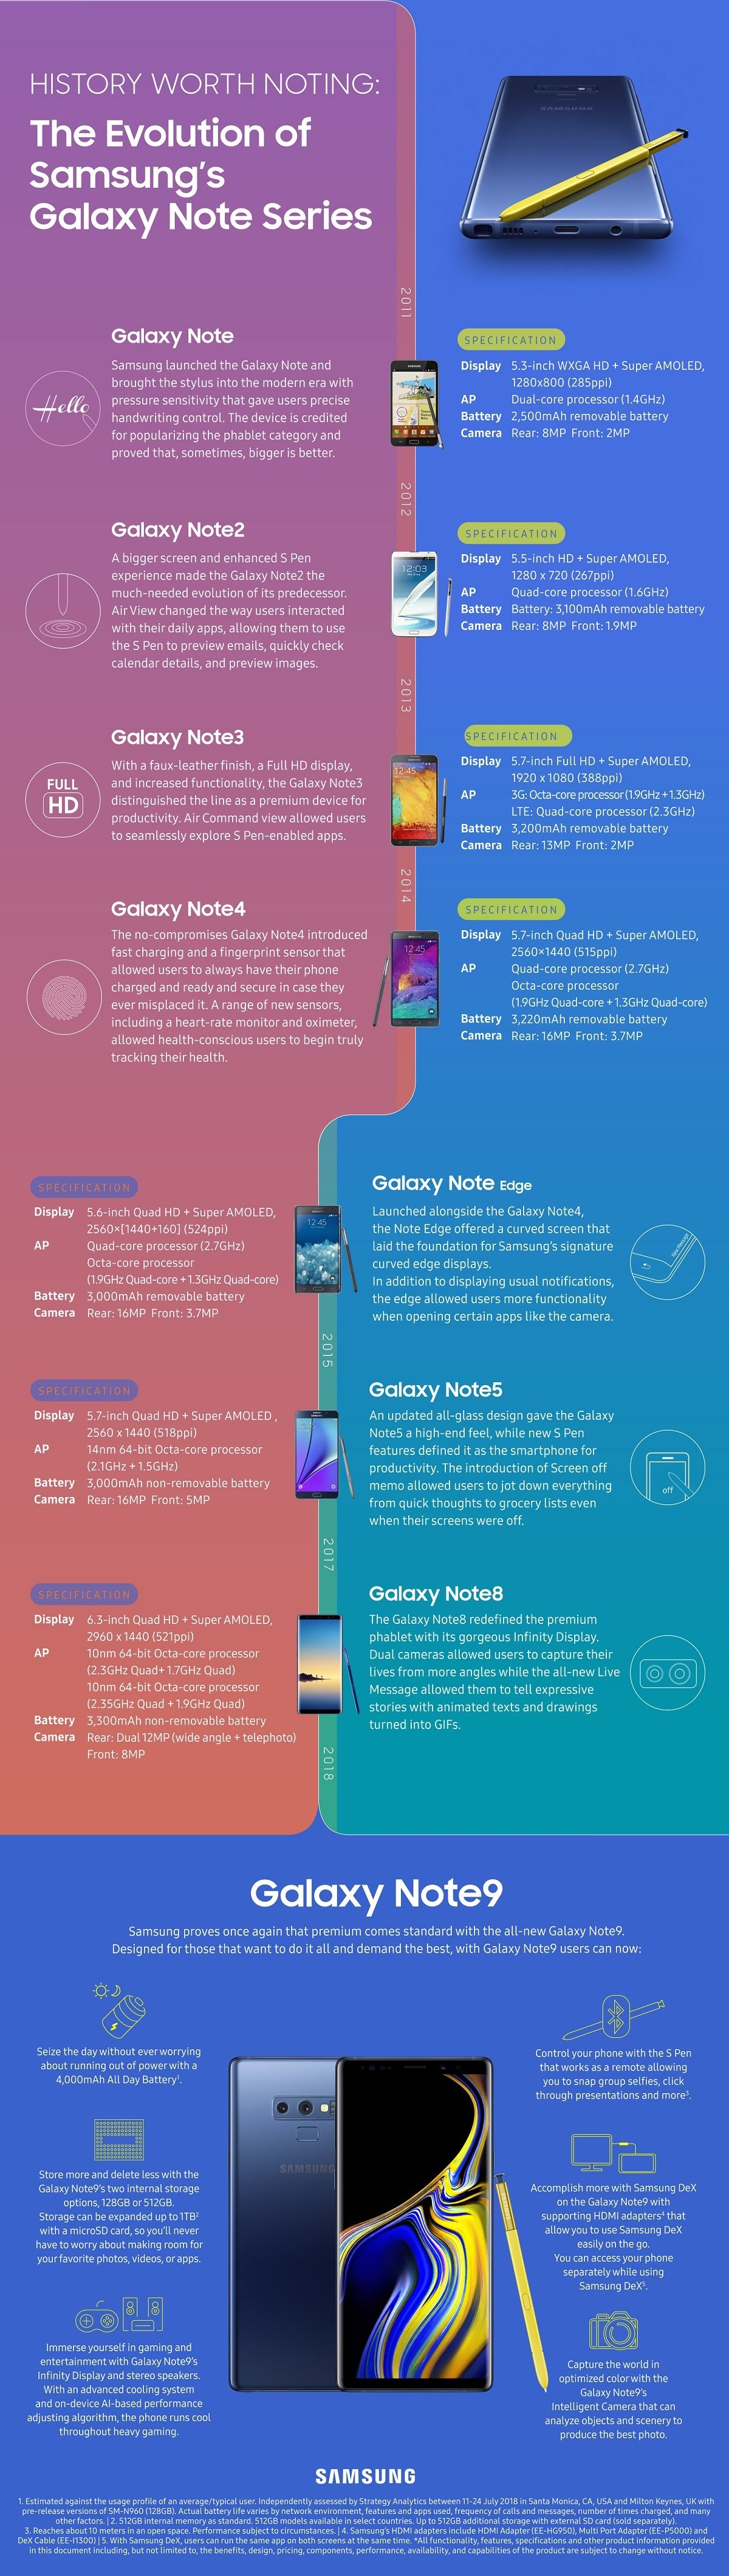 History Worth Noting: The Evolution Of Samsung